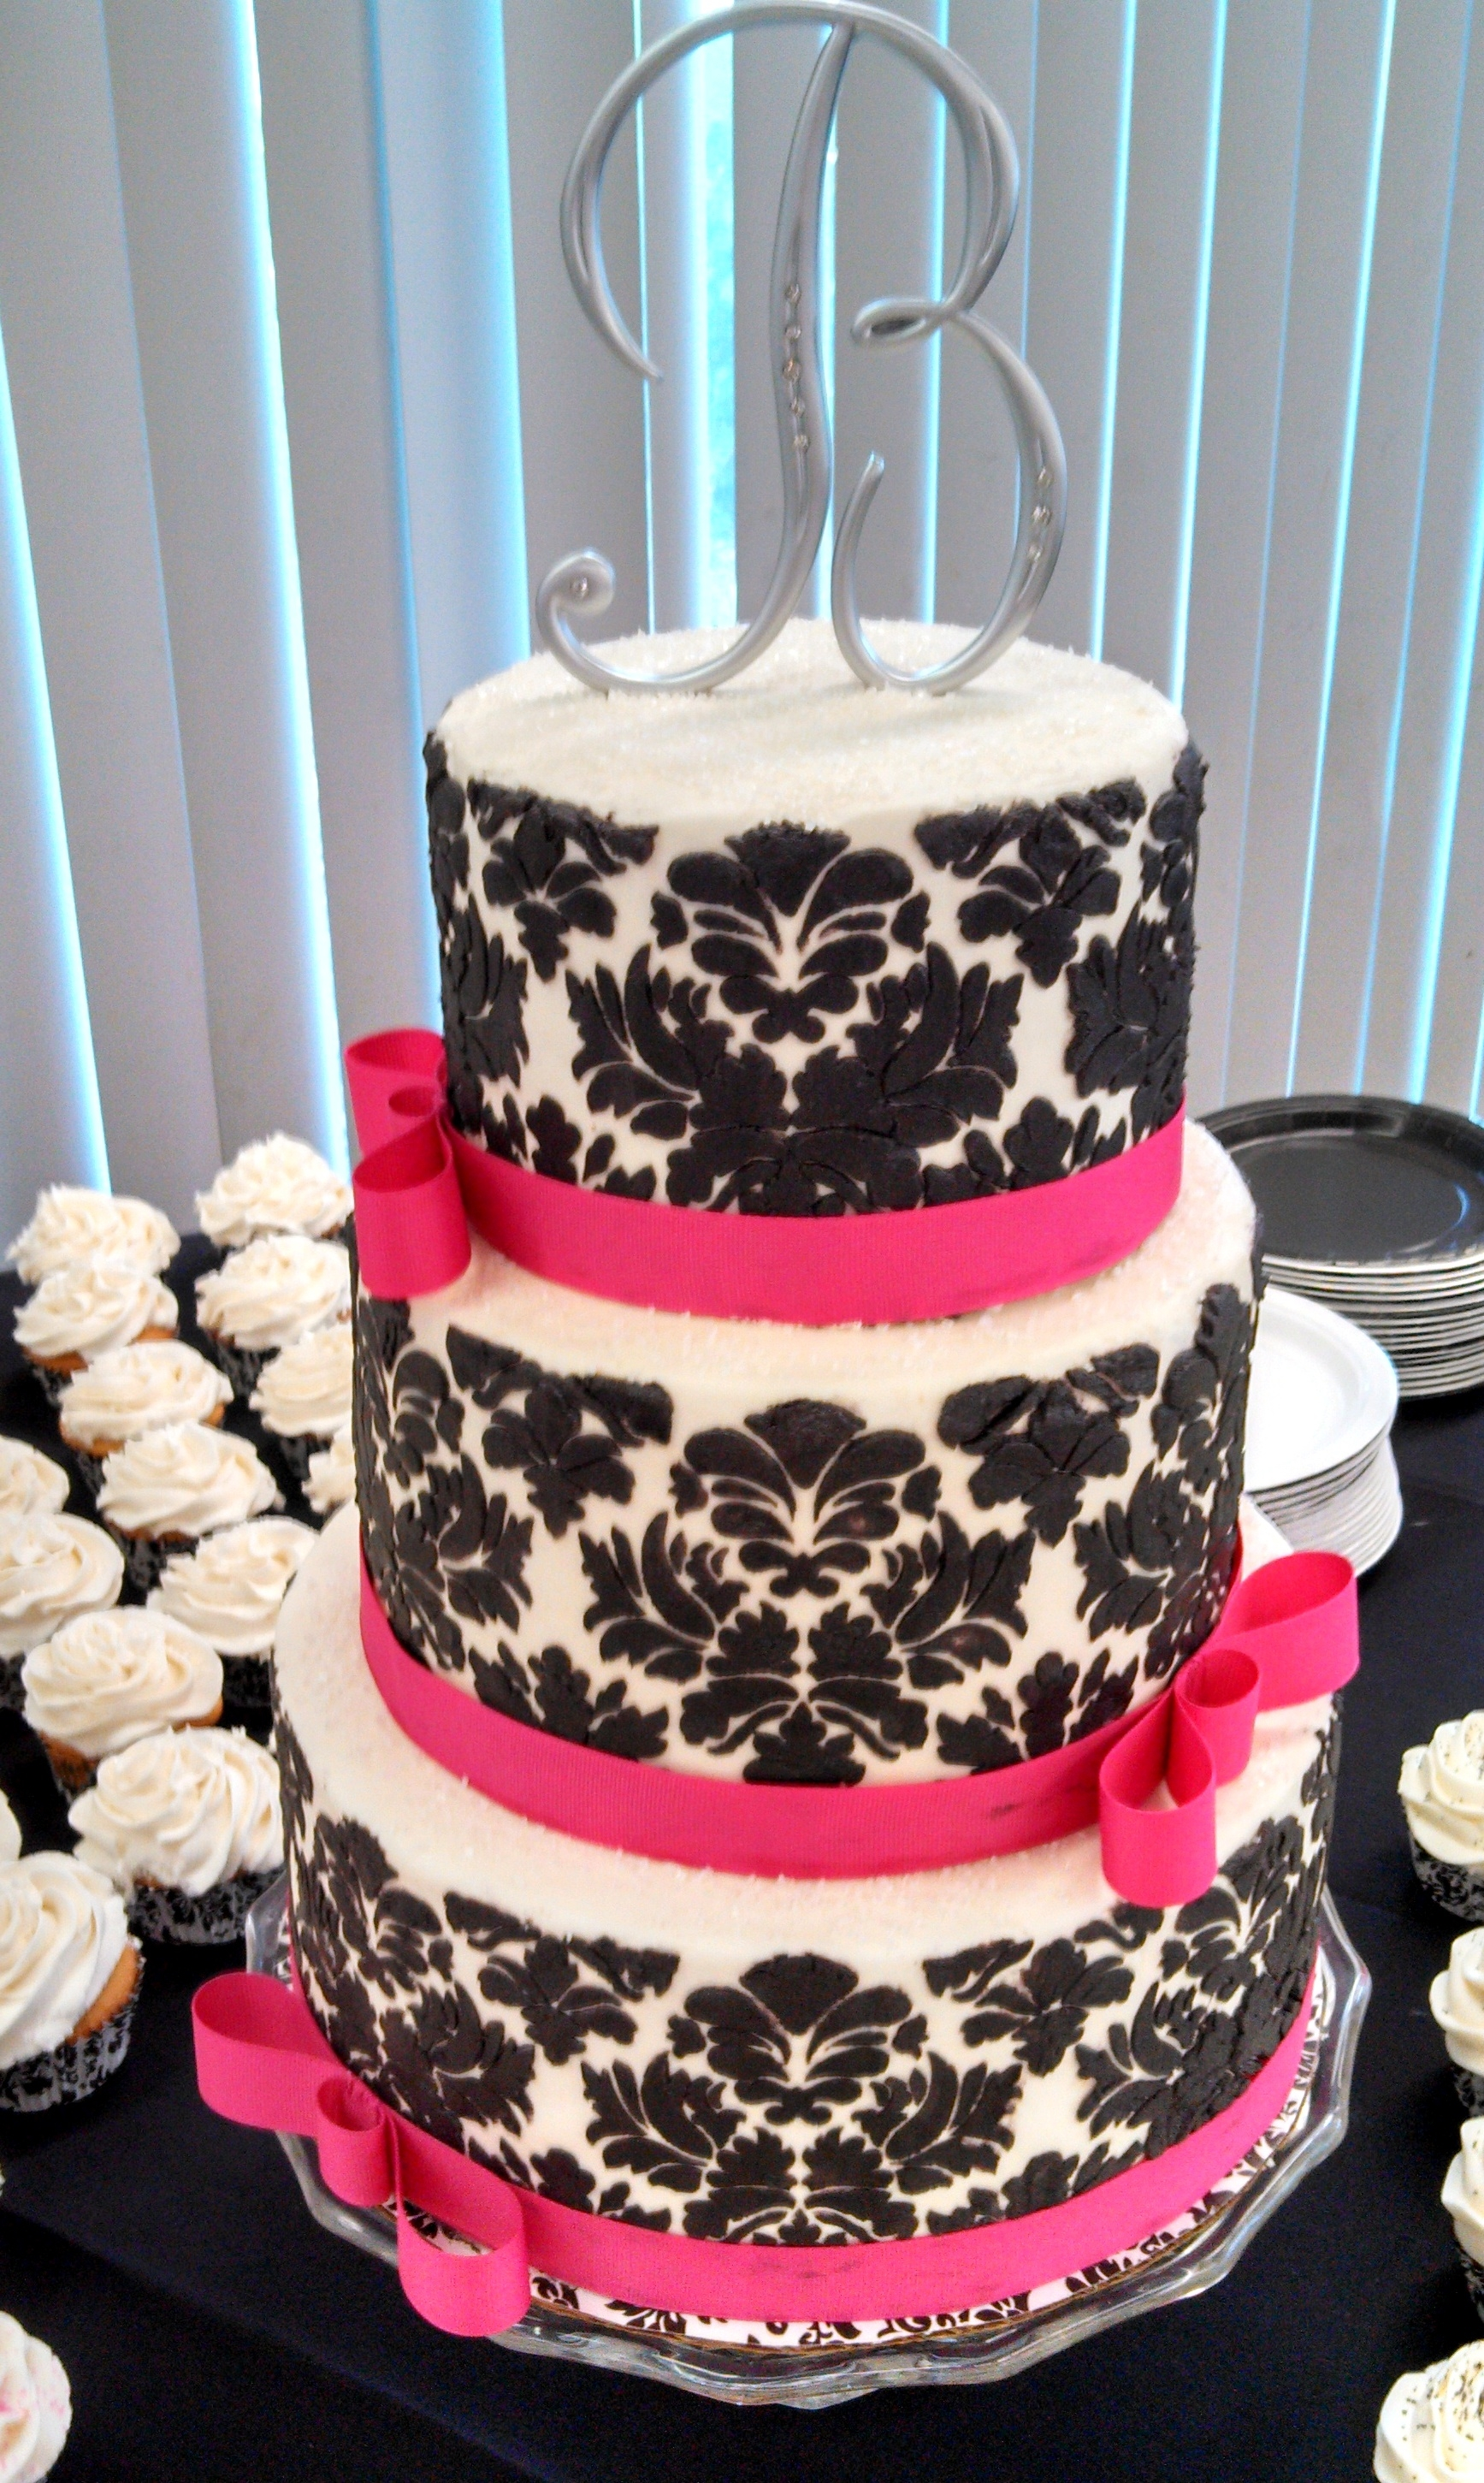 old world style black and white damask wedding cake. Black Bedroom Furniture Sets. Home Design Ideas